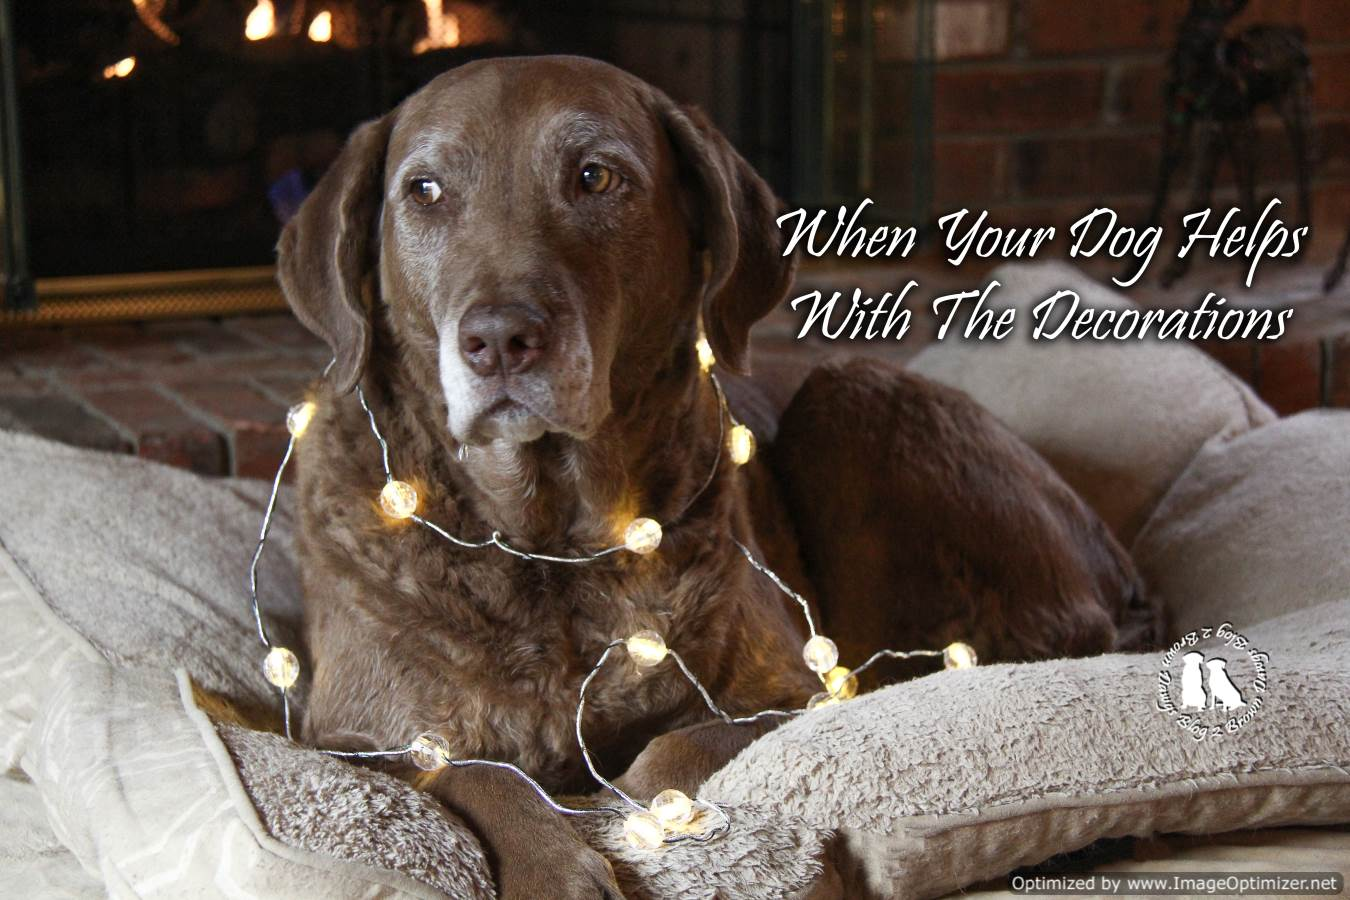 When Your Dog Helps With The Decorations